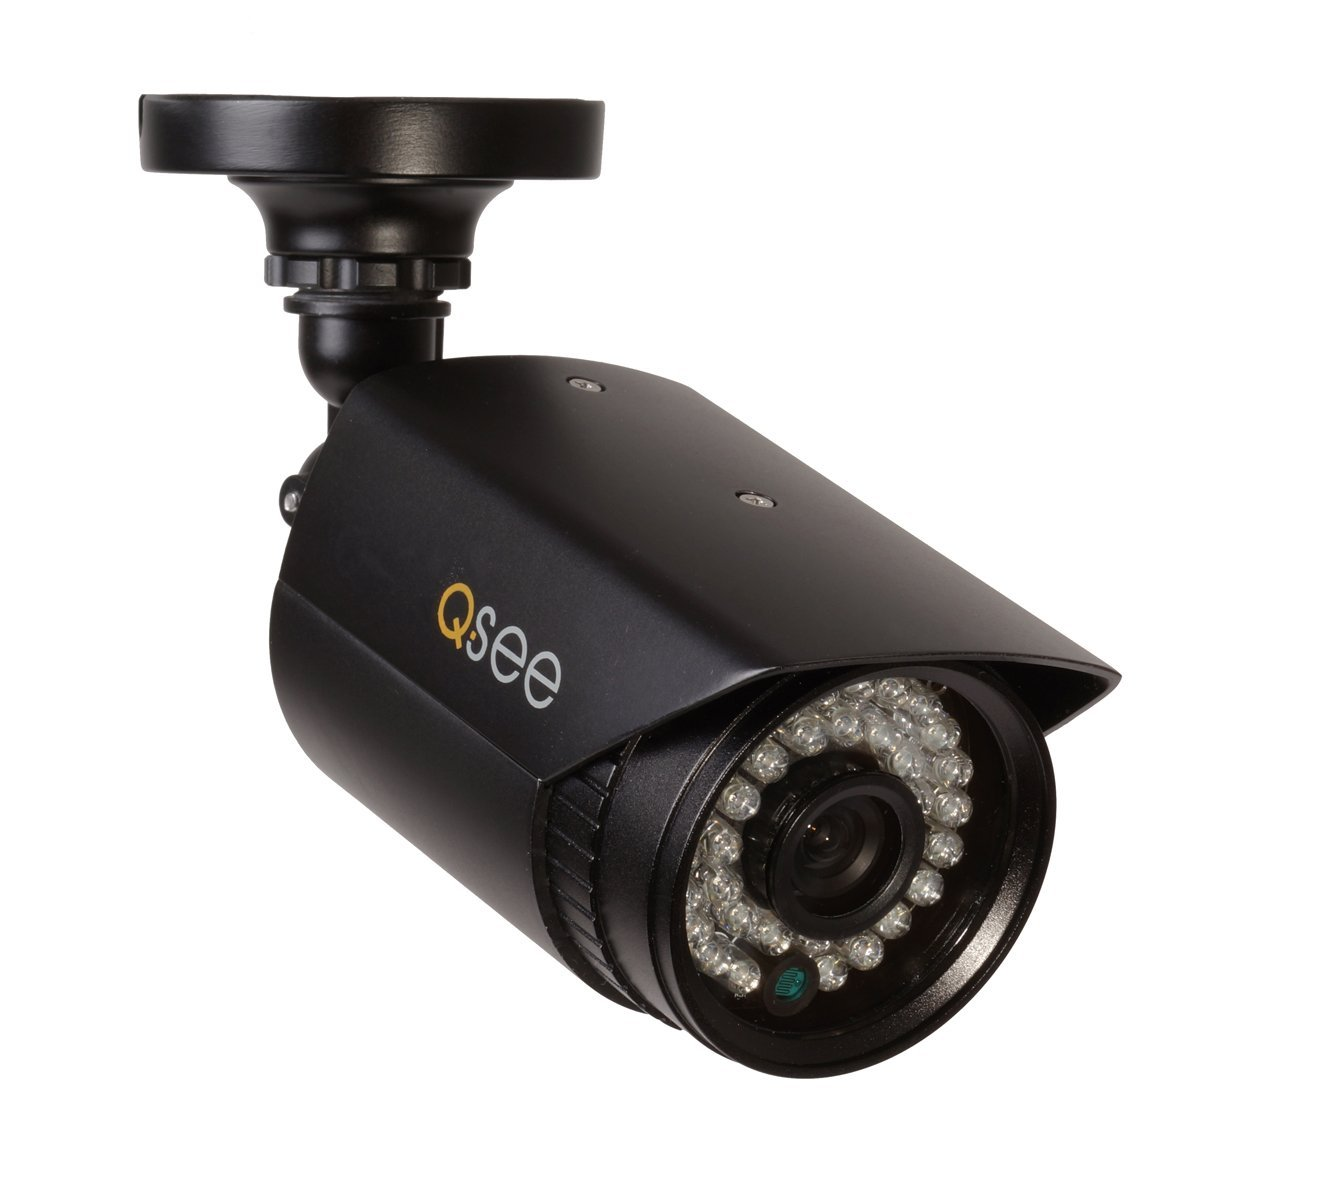 Q-See CCTV closed circuit Video Surveillance